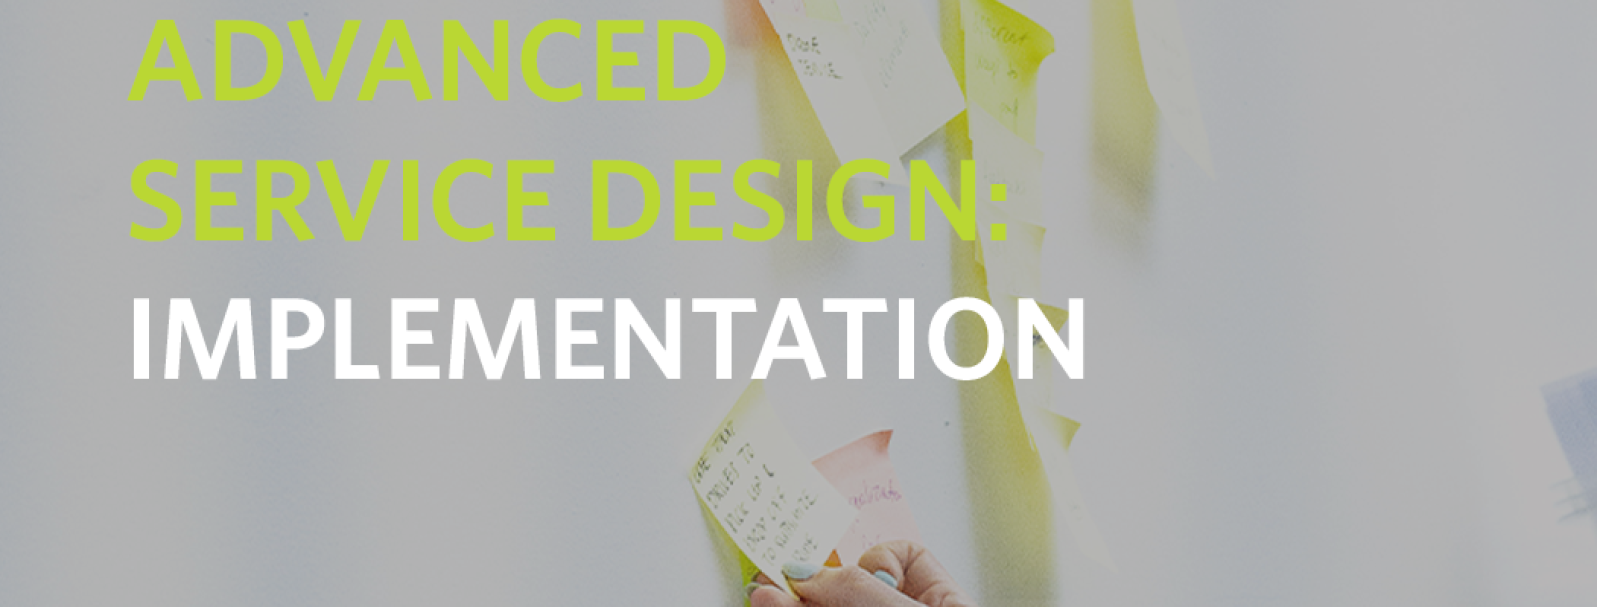 Advanced Service Design: Implementation